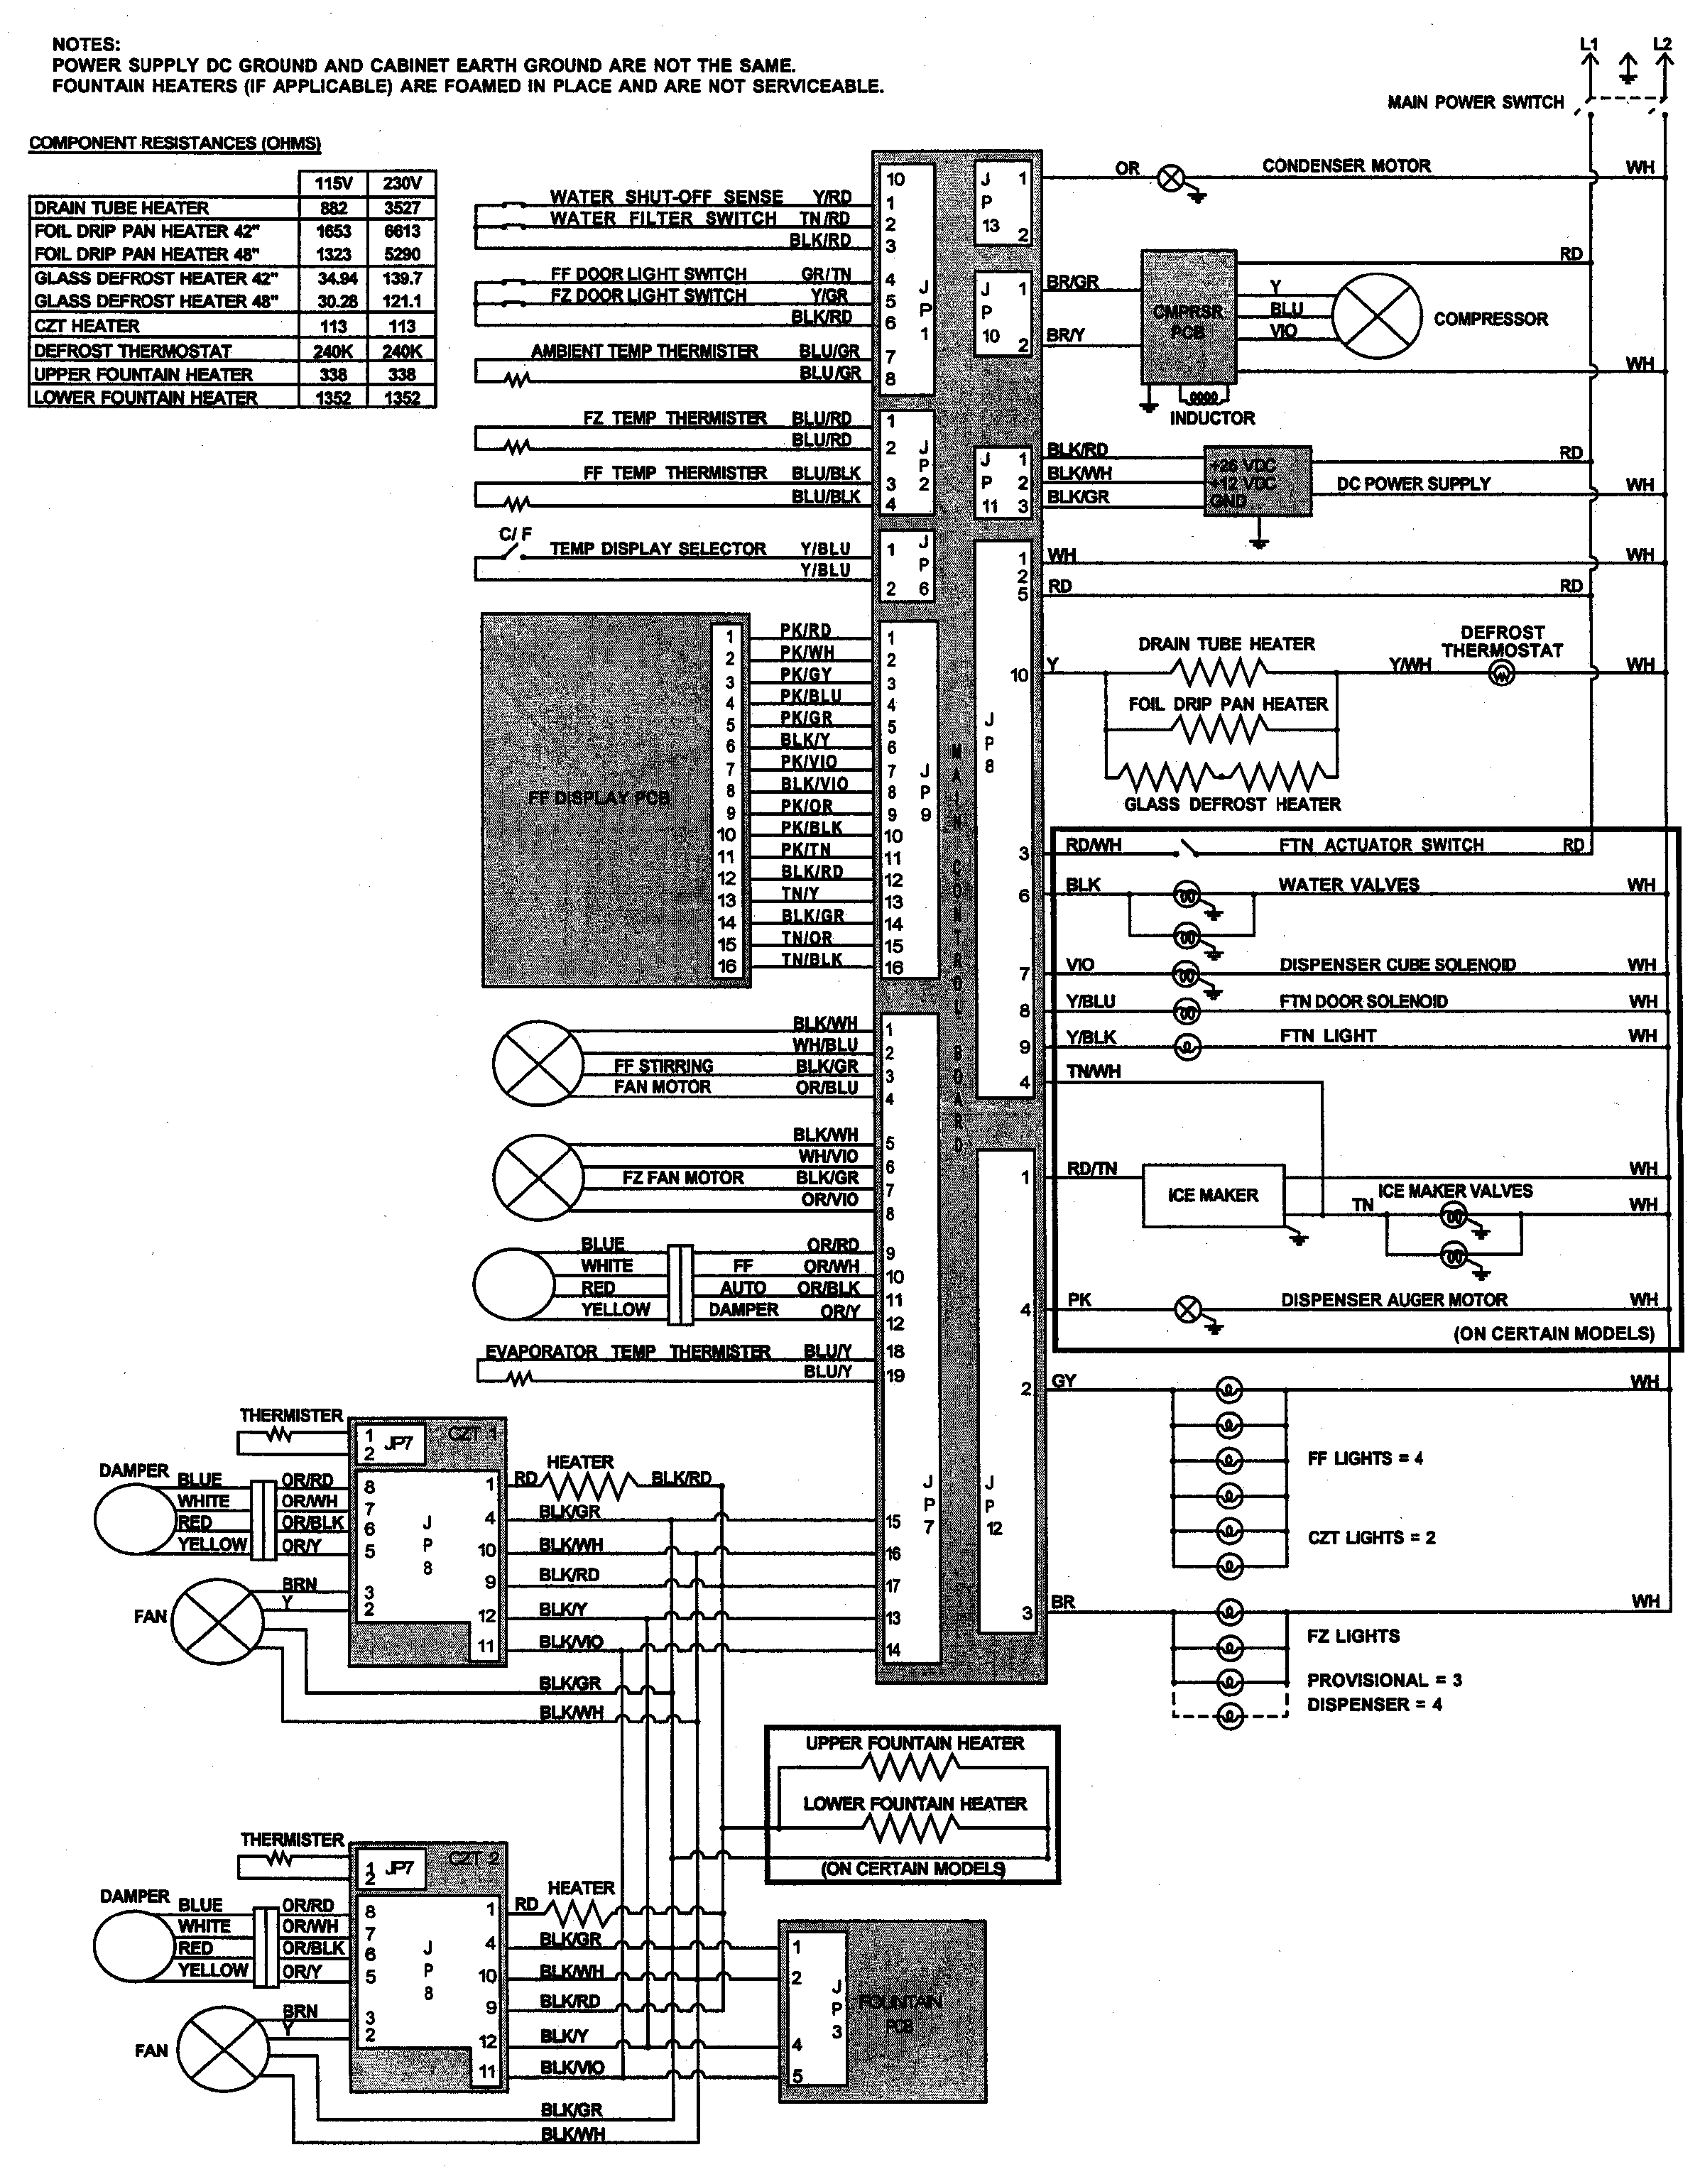 Wiring Diagram 230v Free Download Wiring Diagrams Pictures Wiring